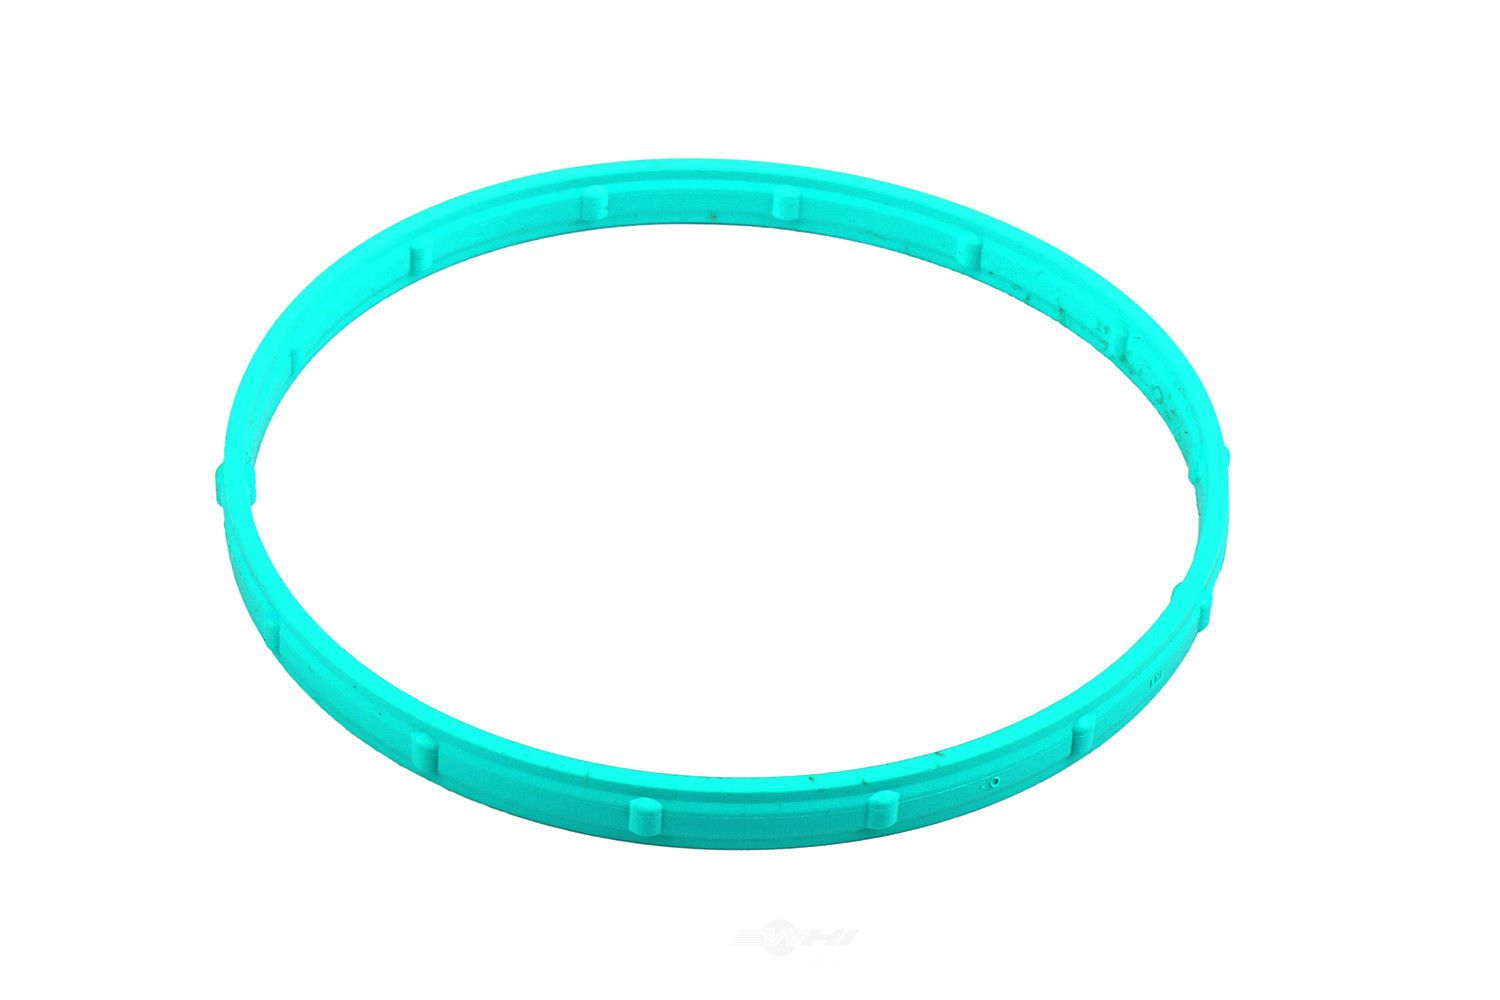 ACDELCO OE SERVICE CANADA - Engine Camshaft Adjuster Magnet Seal - DCG 12580520